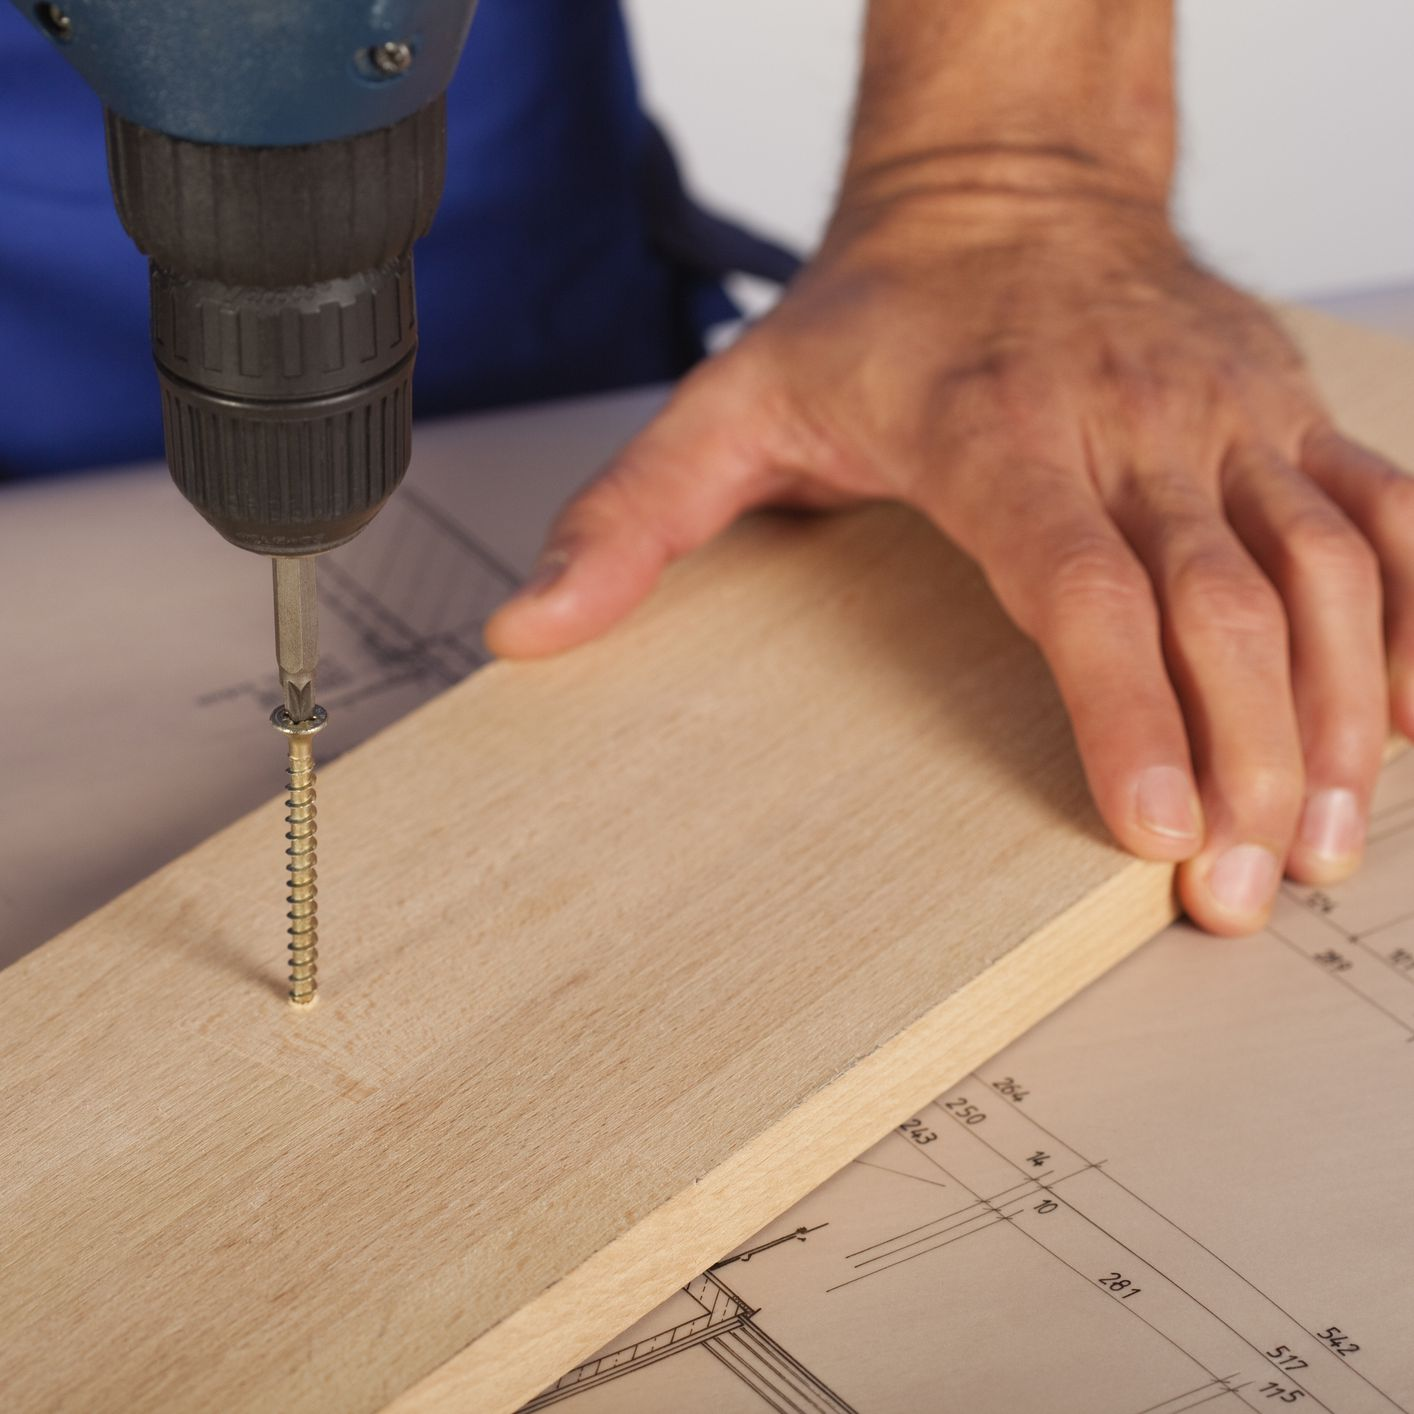 Using Wood Screws in Your Woodworking Projects